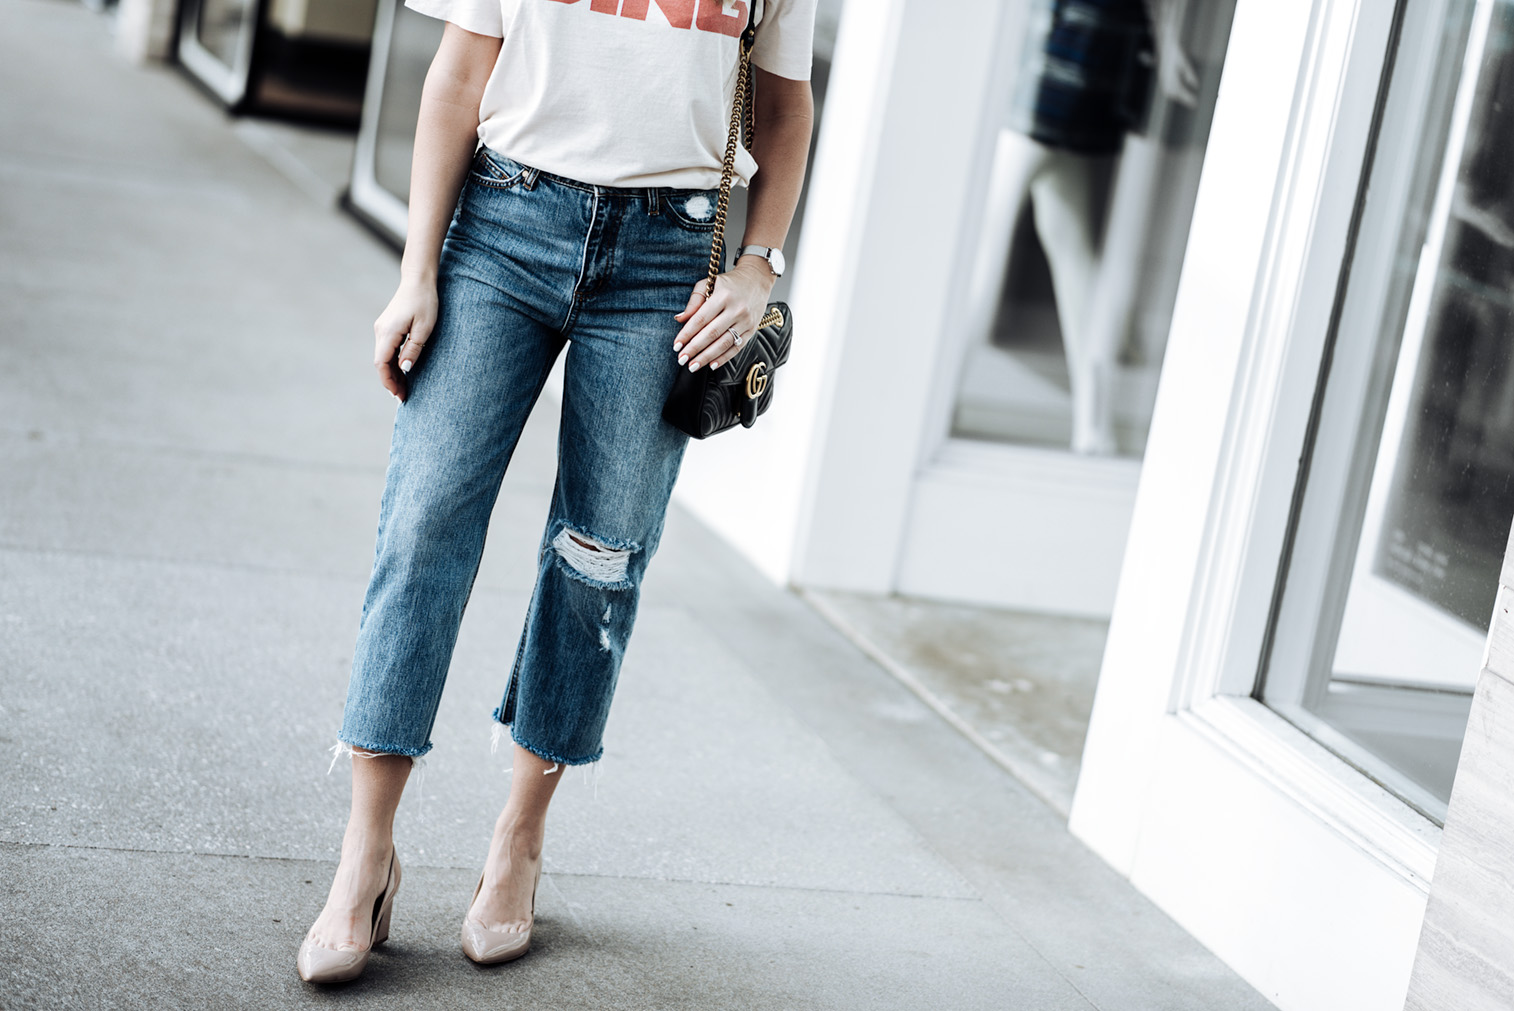 Tiffany Jais Houston fashion and lifestyle blogger | Vintage graphic tee by Annie Bing | Cropped straight leg denim jeans (Similar) | Zala pumps | Gucci Marmont bag